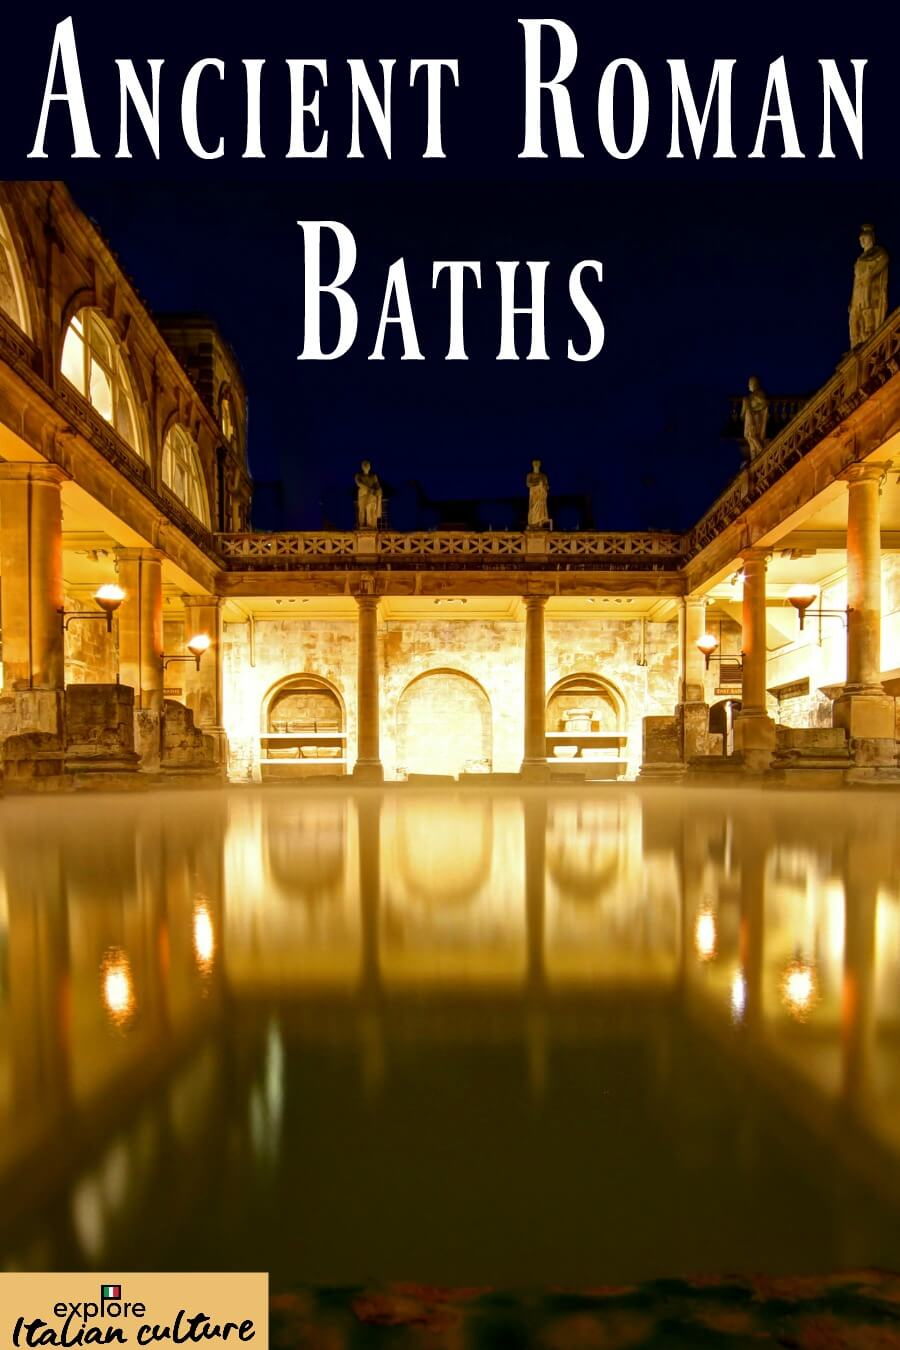 Ancient Roman bathhouses clickable link